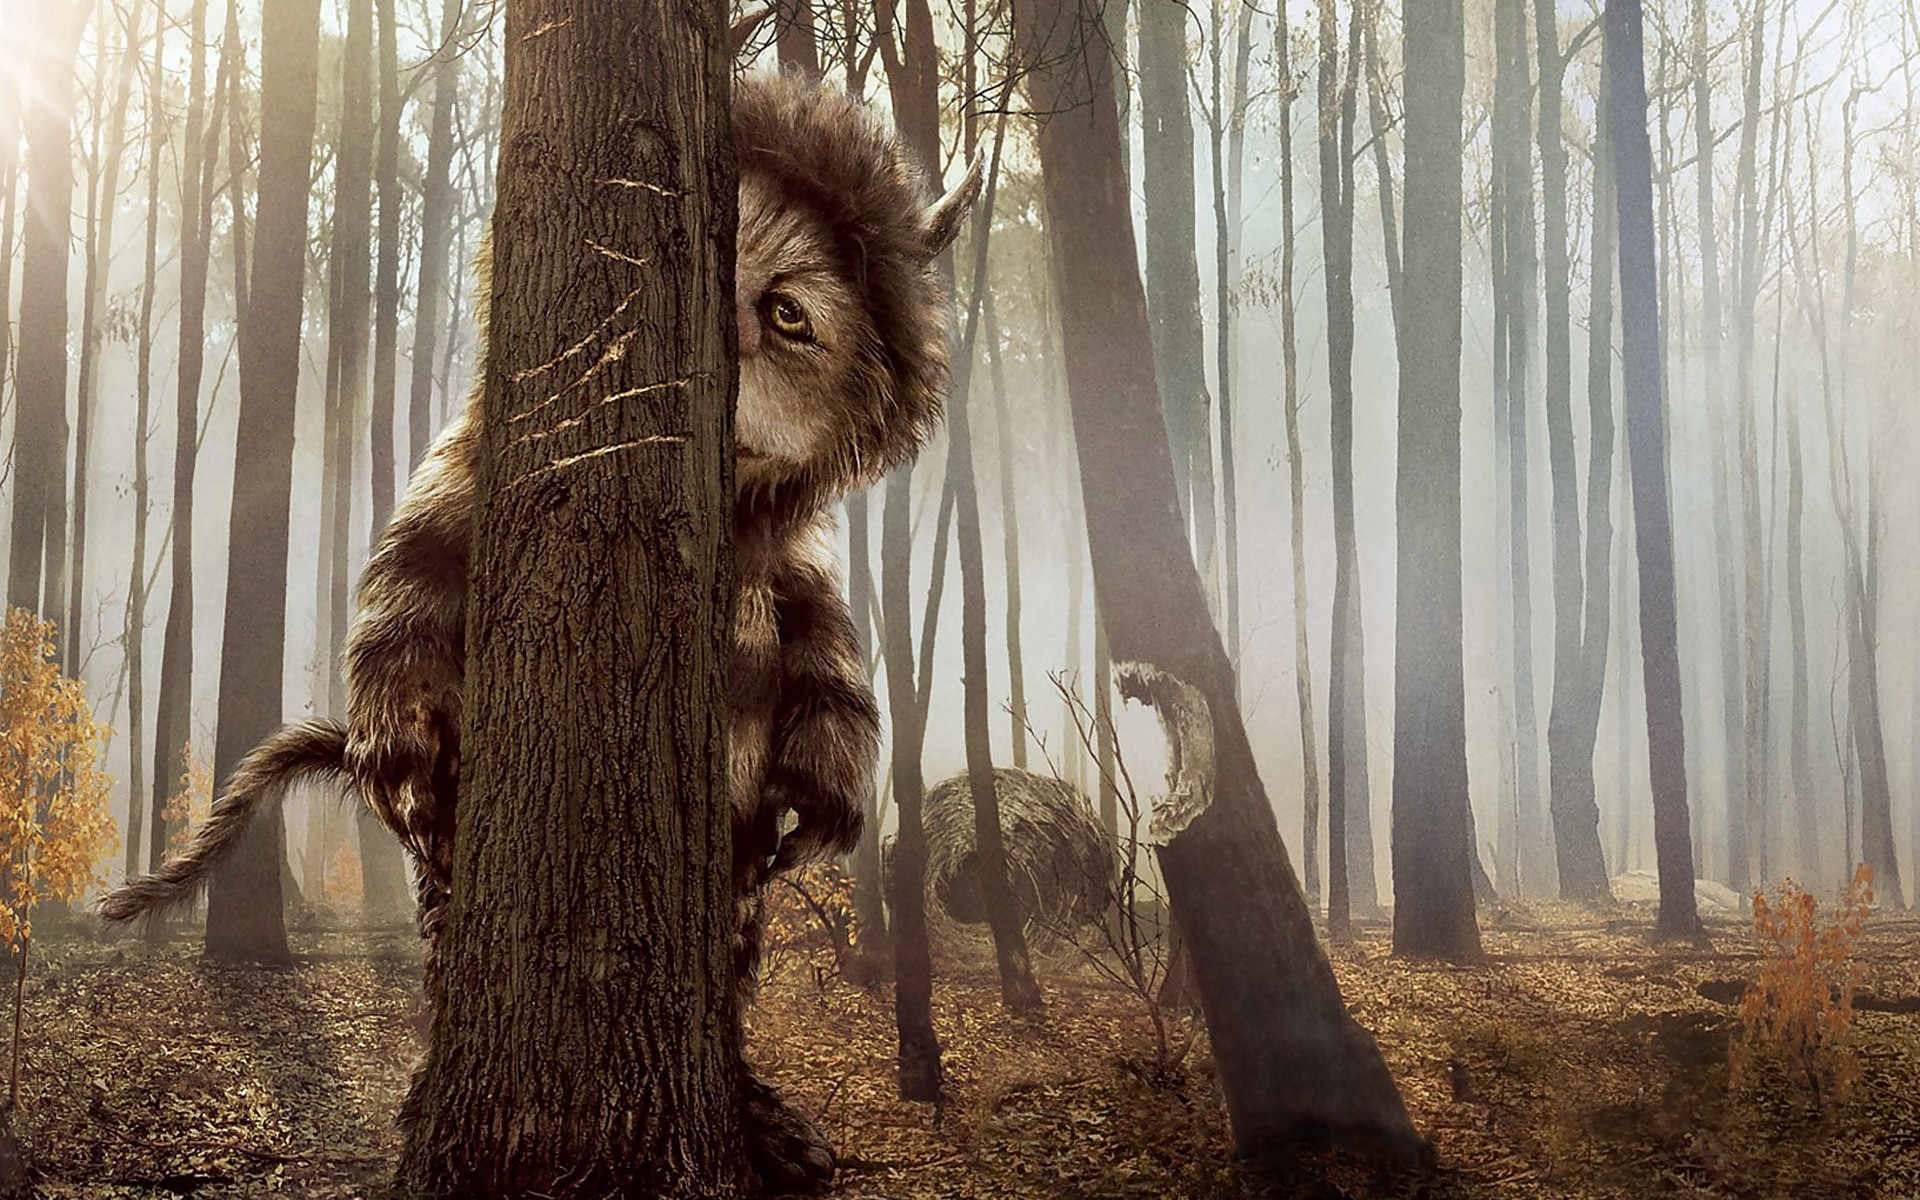 Where The Wild Things Are Free Wallpapers